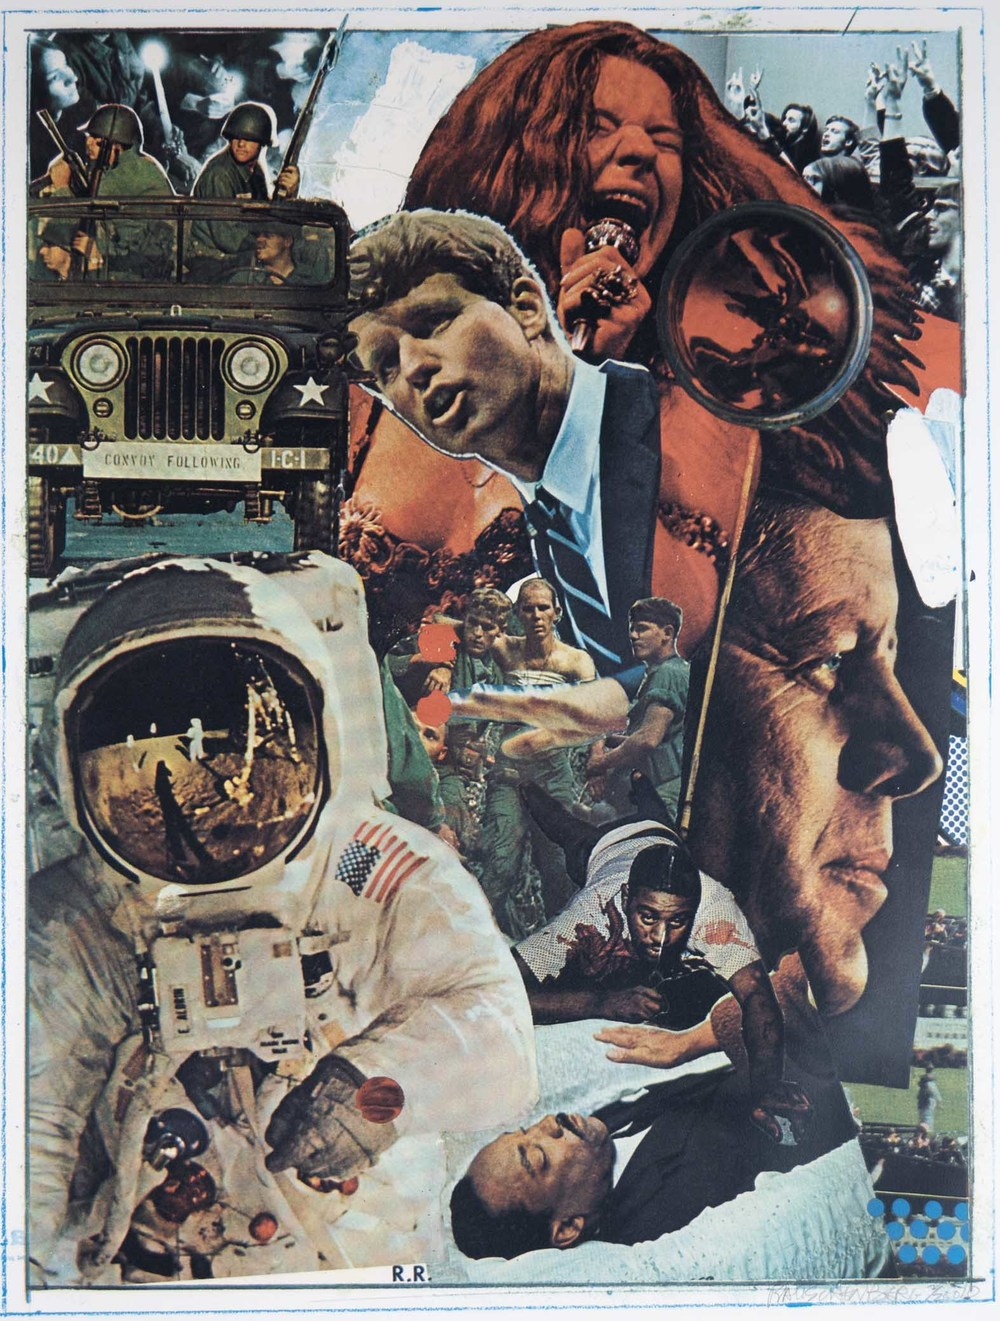 Robert Rauschenberg, Signs, 1970, Screenprint (2/250), Purchased through Douglass Screen Printers Serigraphy Collection Fund, Polk Museum of Art Permanent Collection 2009.8